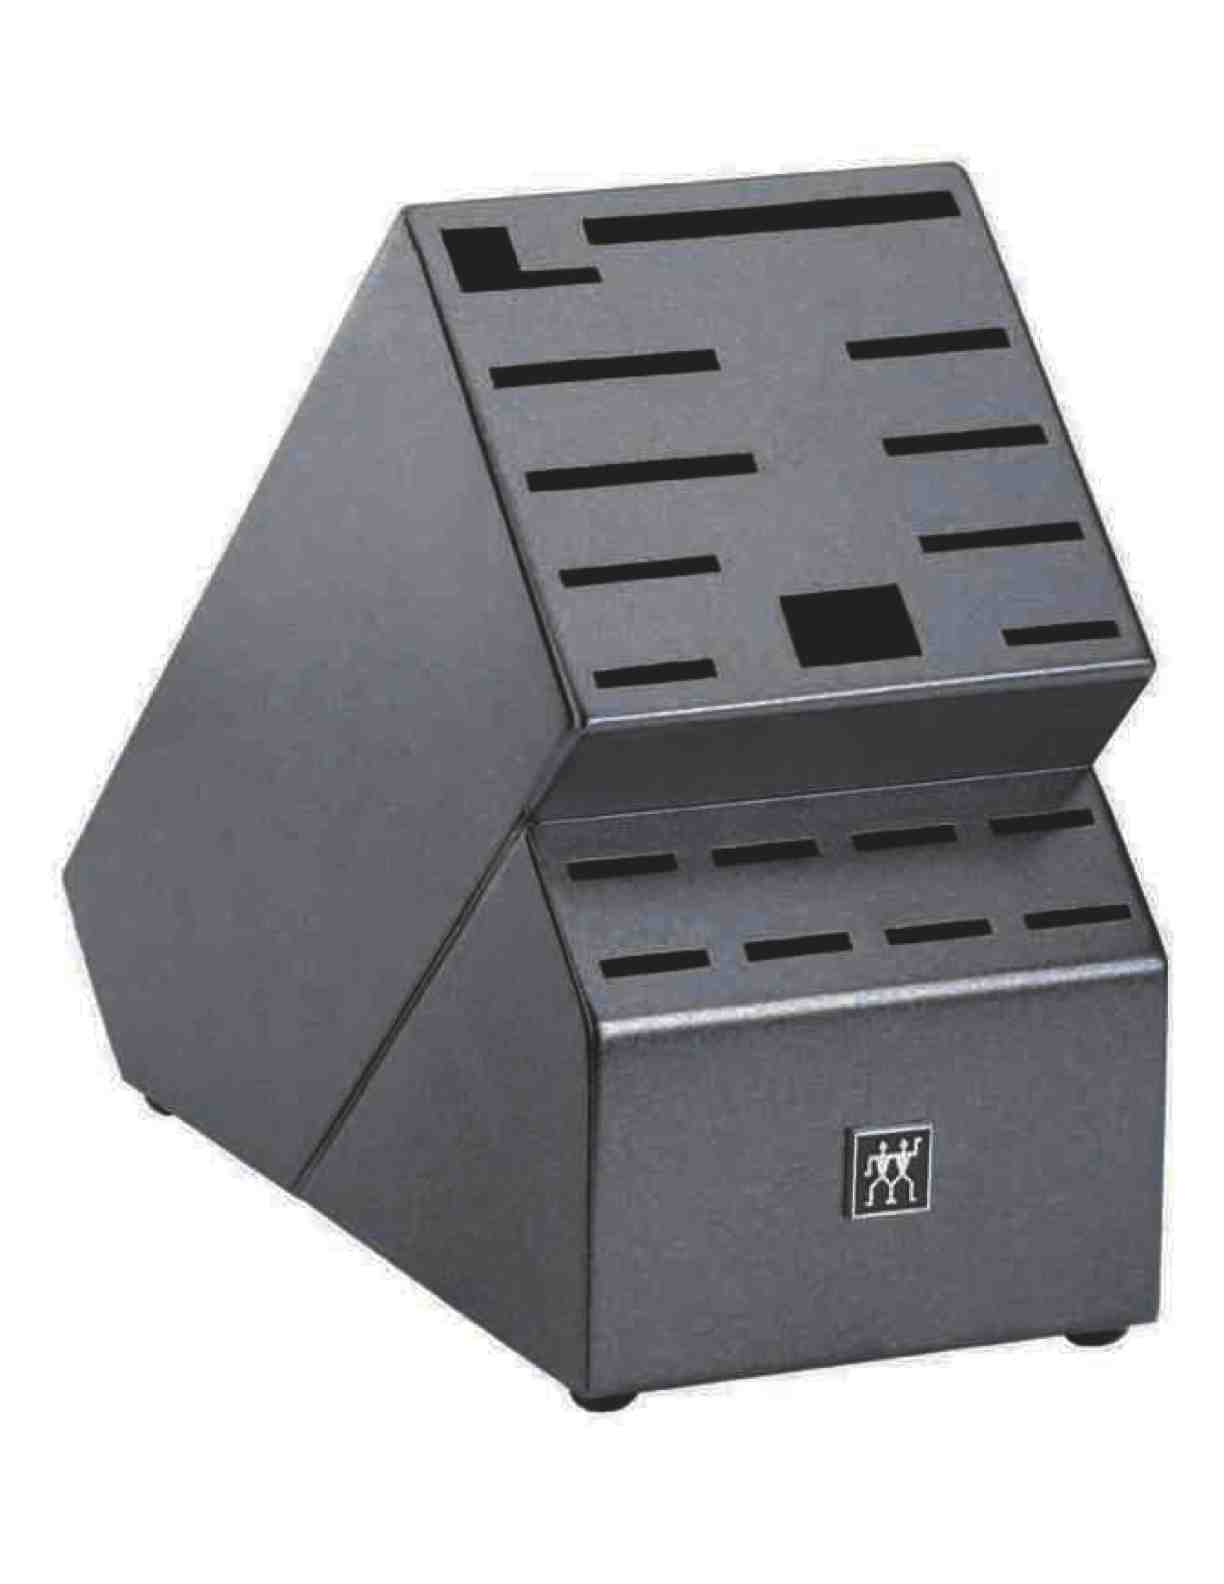 Henckels Twin Charcoal 19 Slot Knife Block